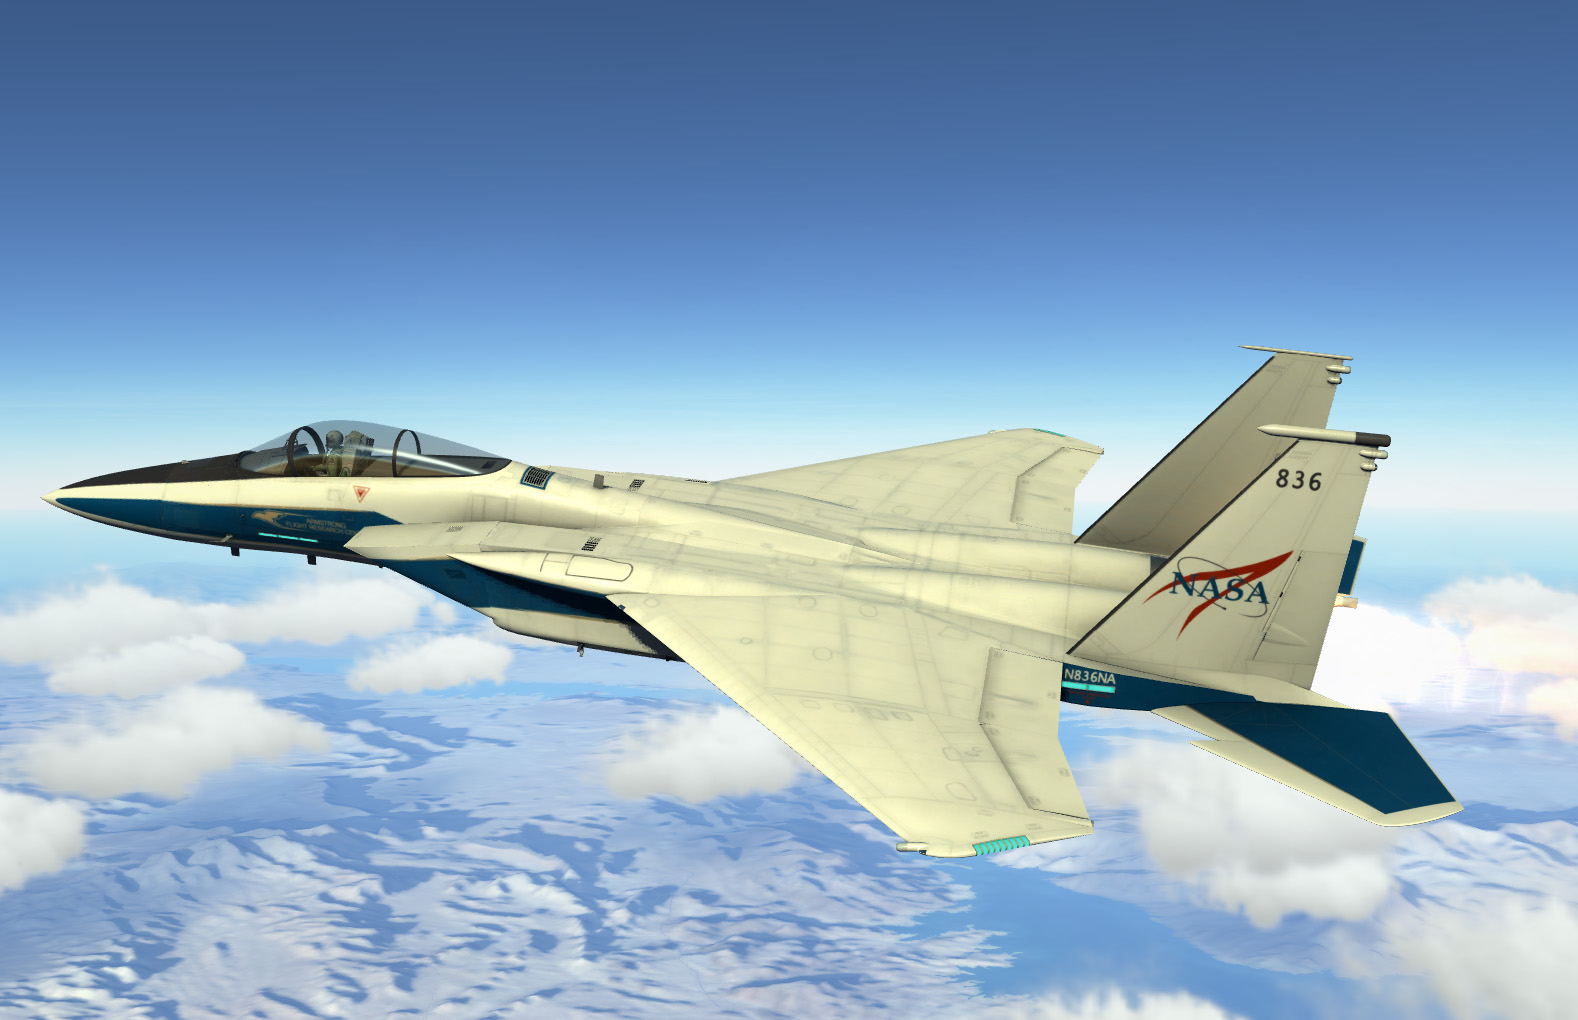 F-15C: NASA / Armstrong Flight Research Center Livery